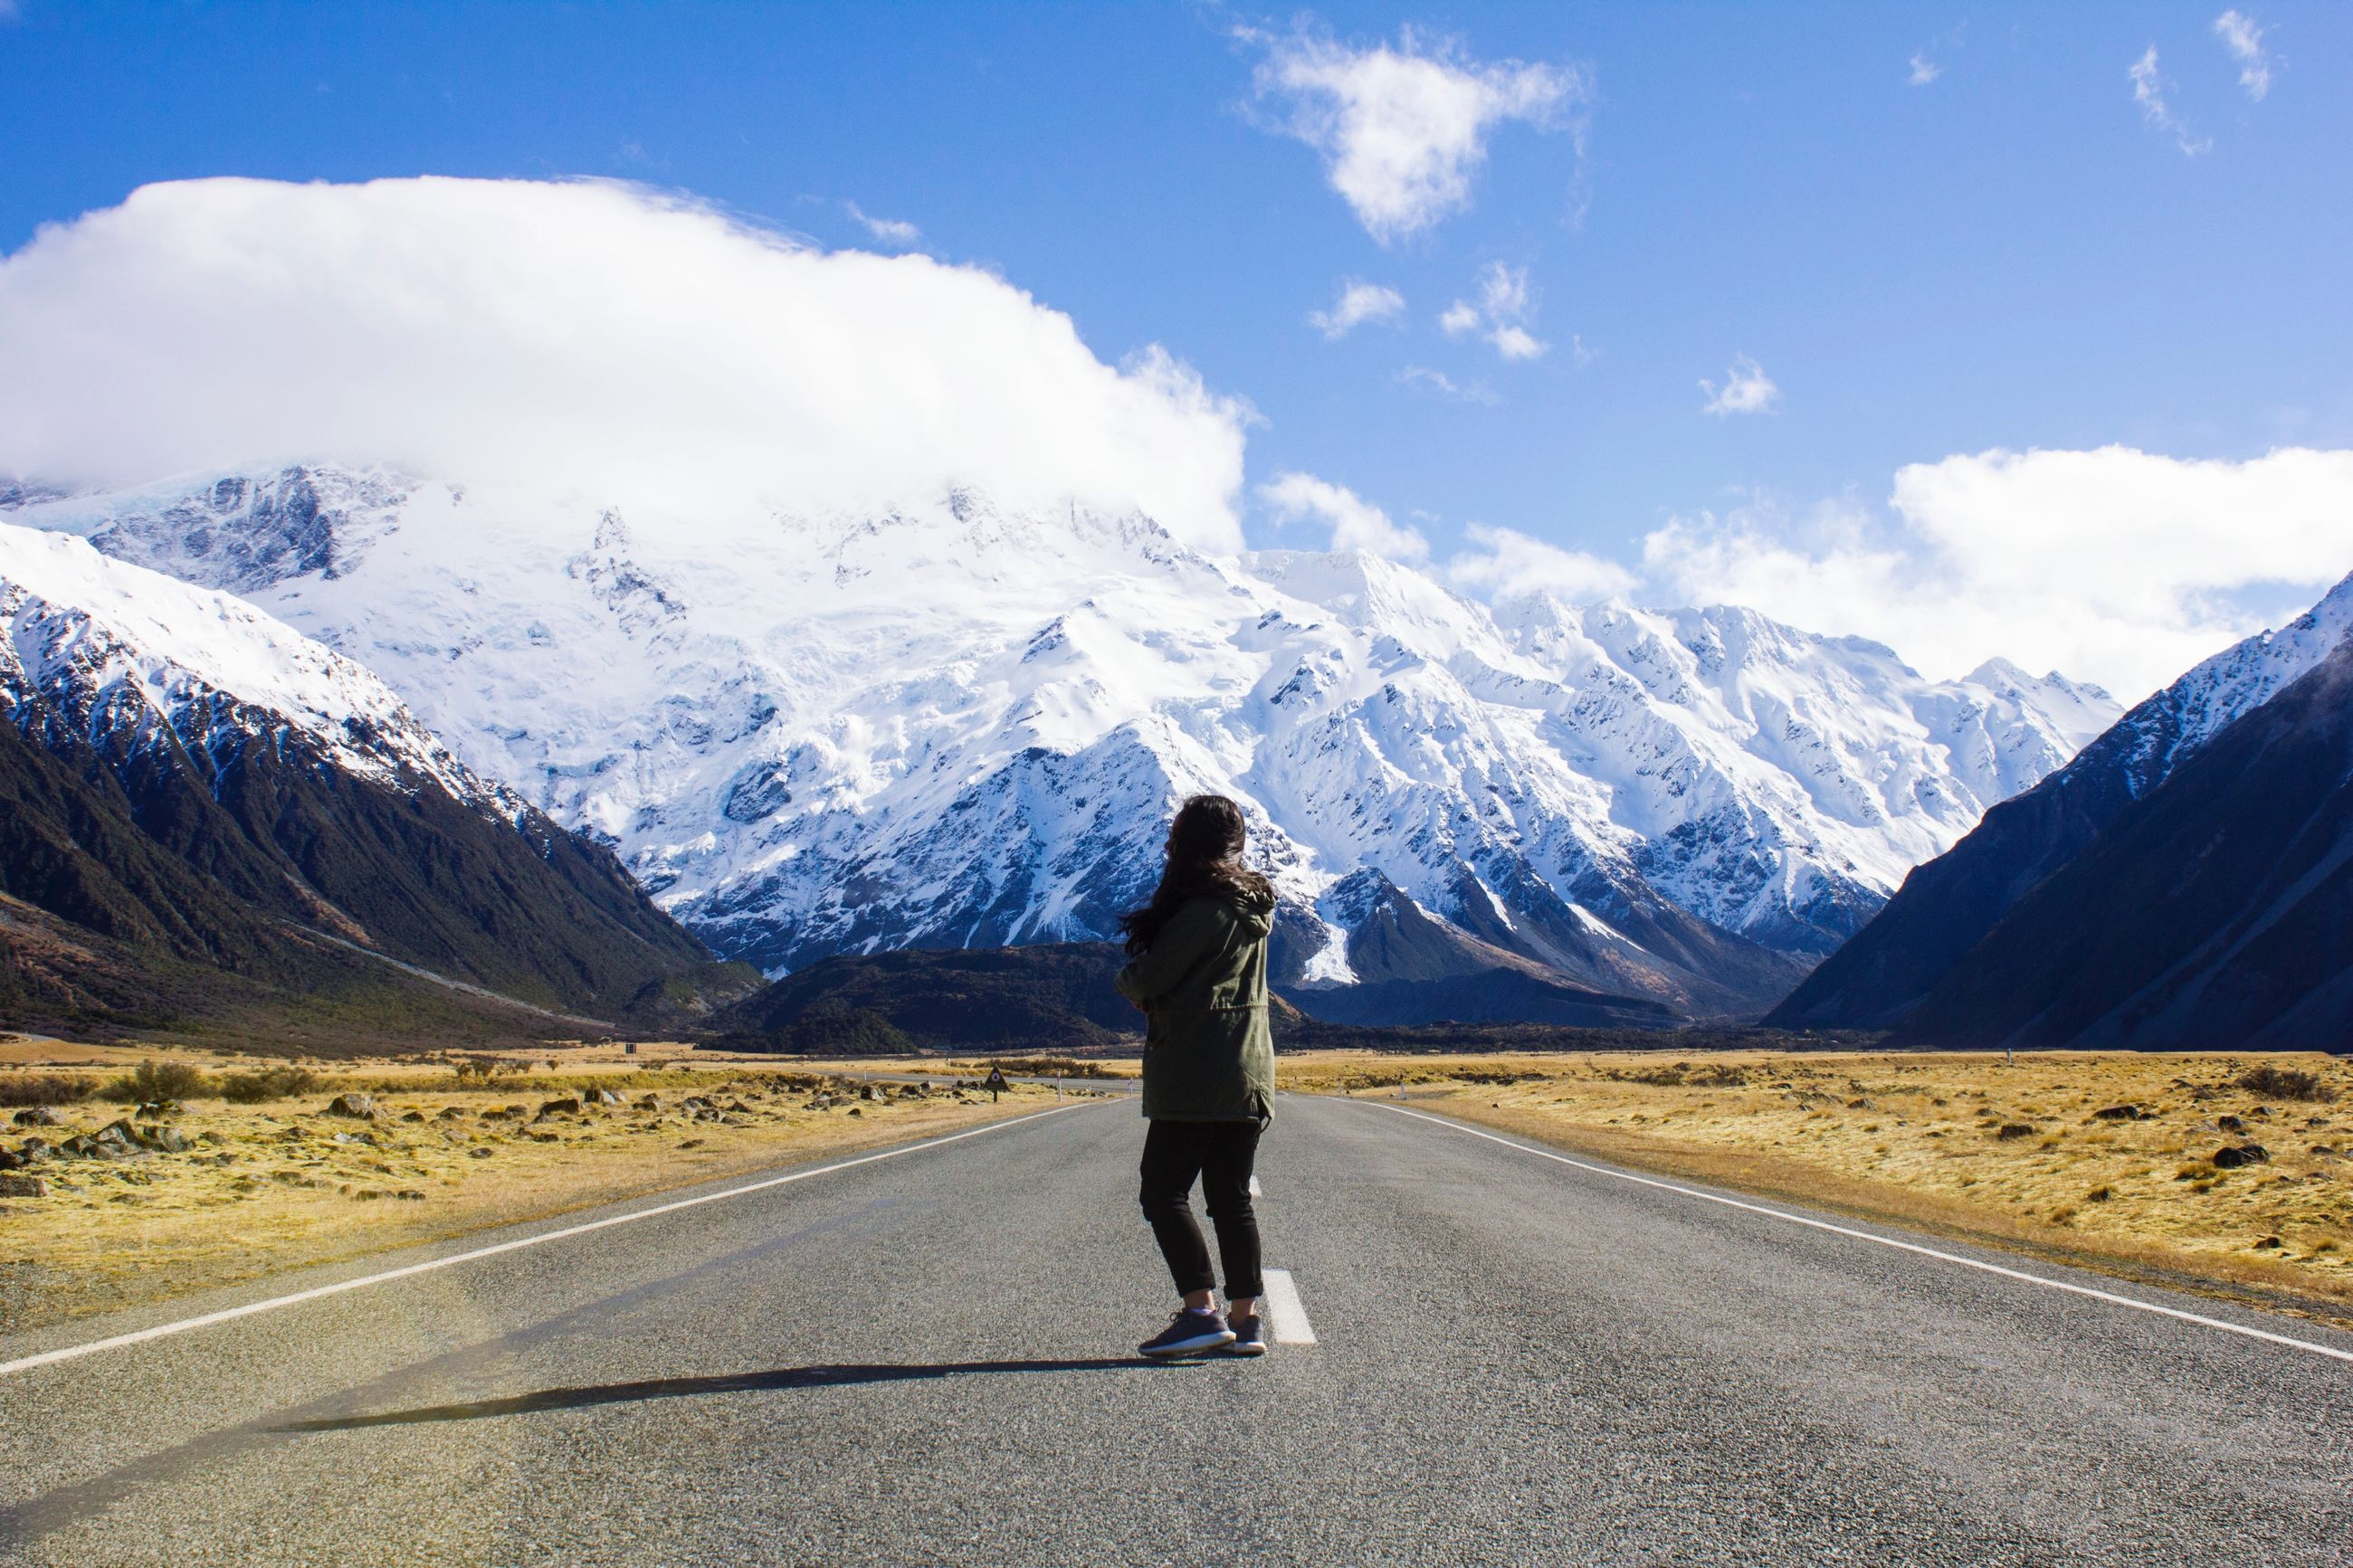 mountain, one person, road, full length, transportation, lifestyles, leisure activity, cloud - sky, sky, beauty in nature, mountain range, real people, scenics - nature, nature, rear view, day, winter, snow, environment, snowcapped mountain